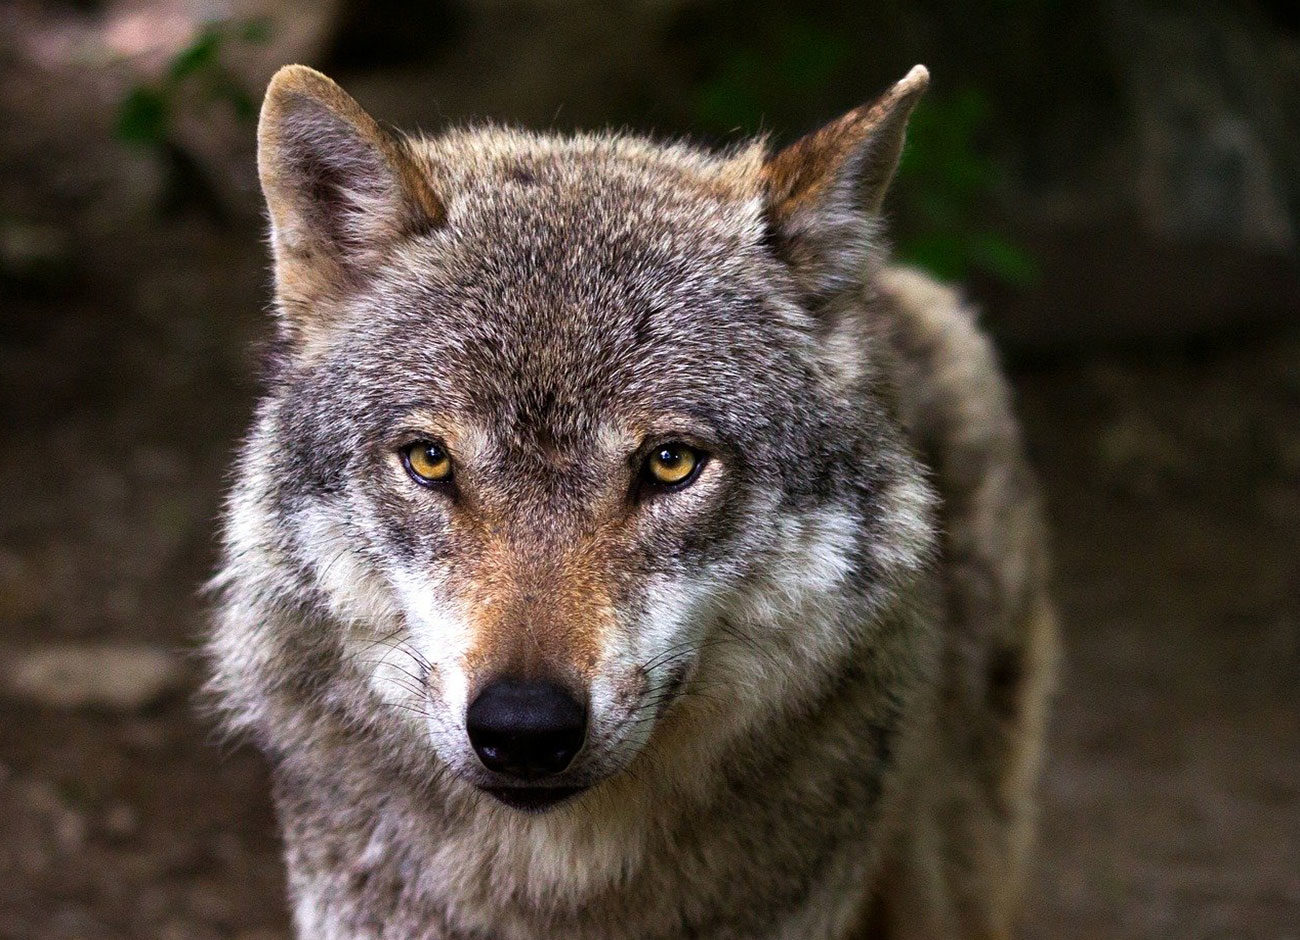 a close up photo of a gray wolf